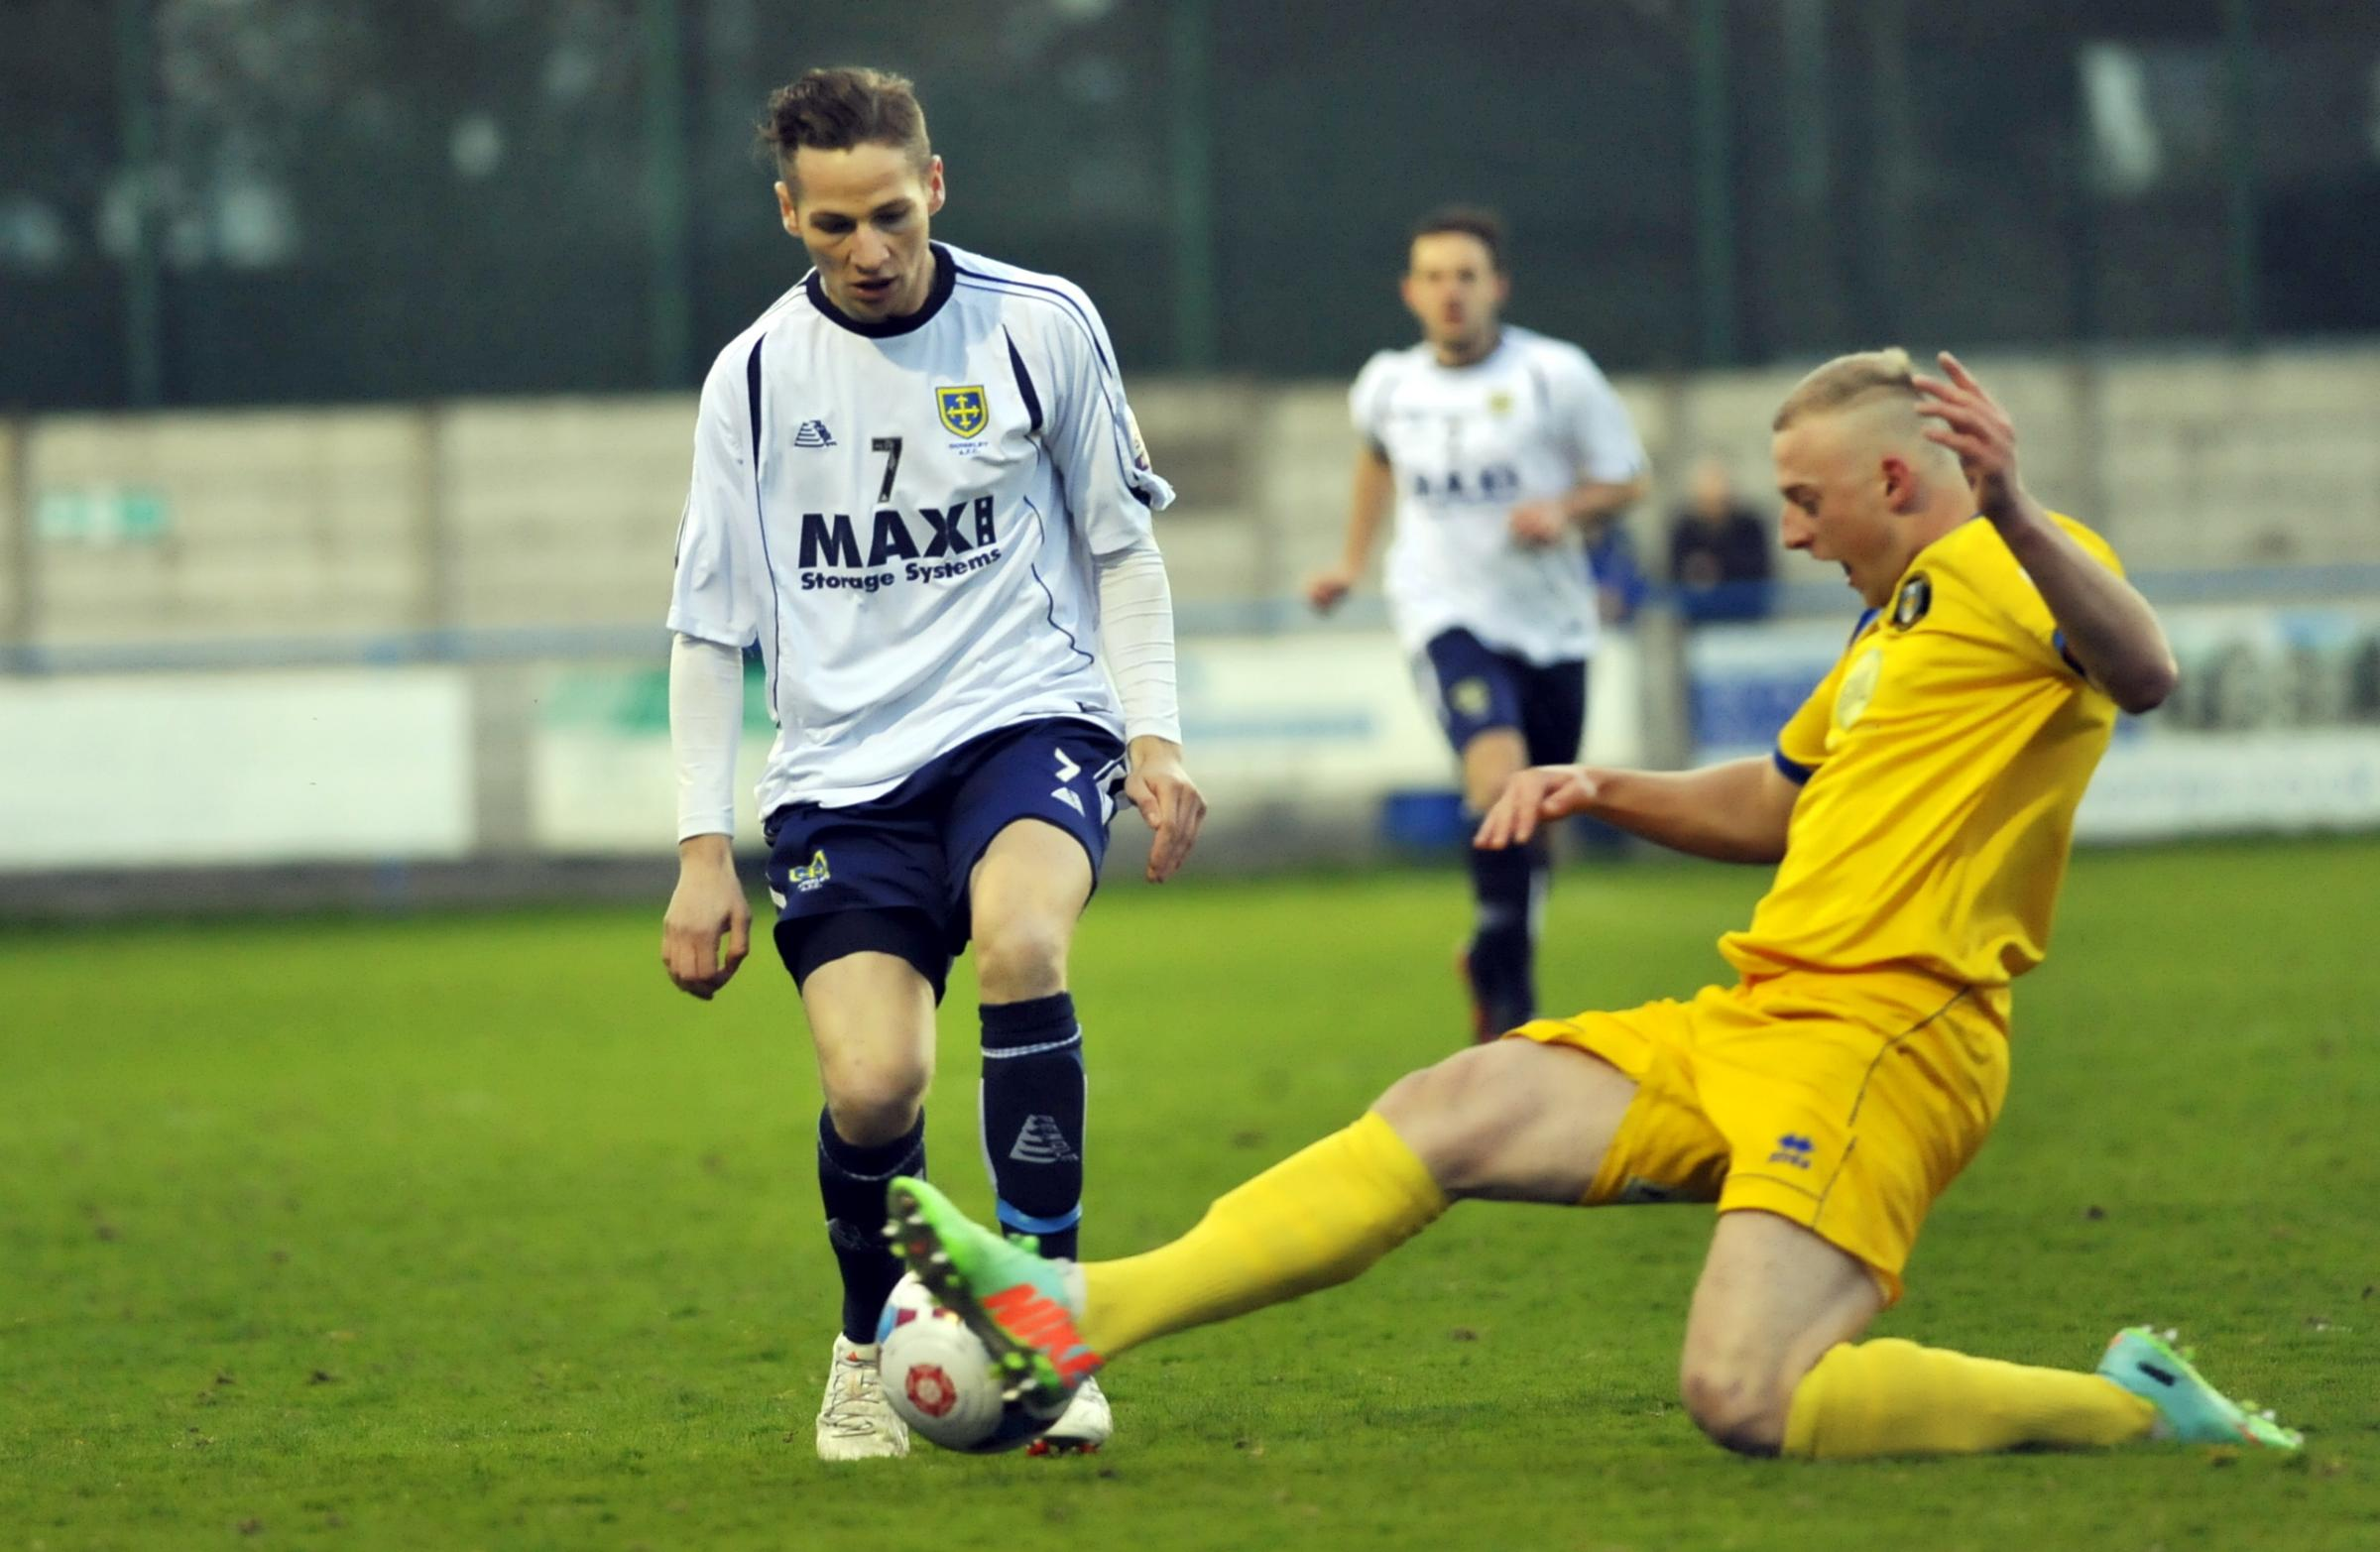 Wayne Brooksby was on target for Guiseley against Albion Sports